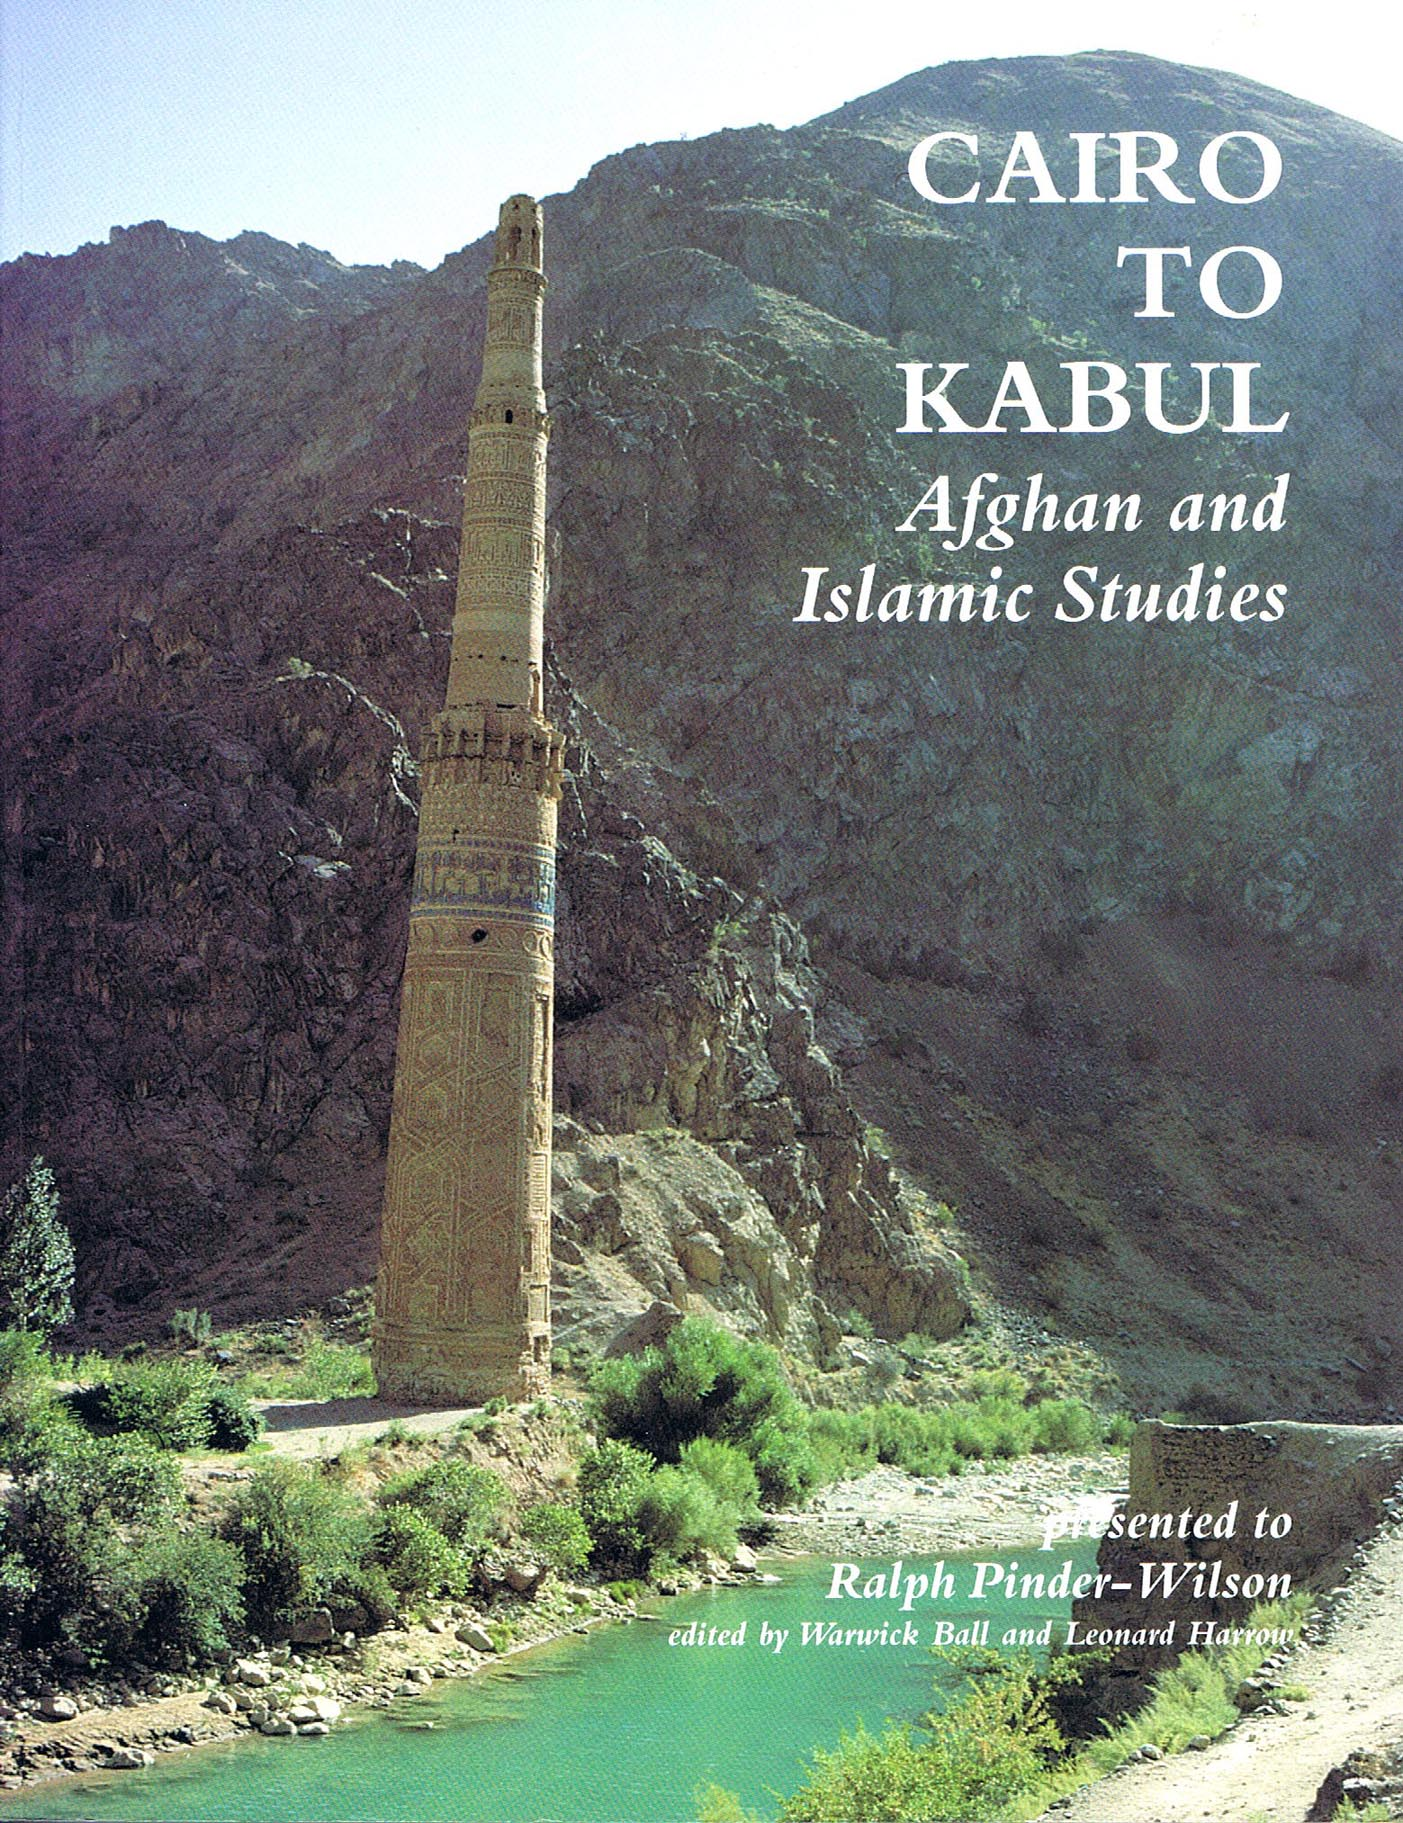 01_Cairo_to_Cabul_front_cover